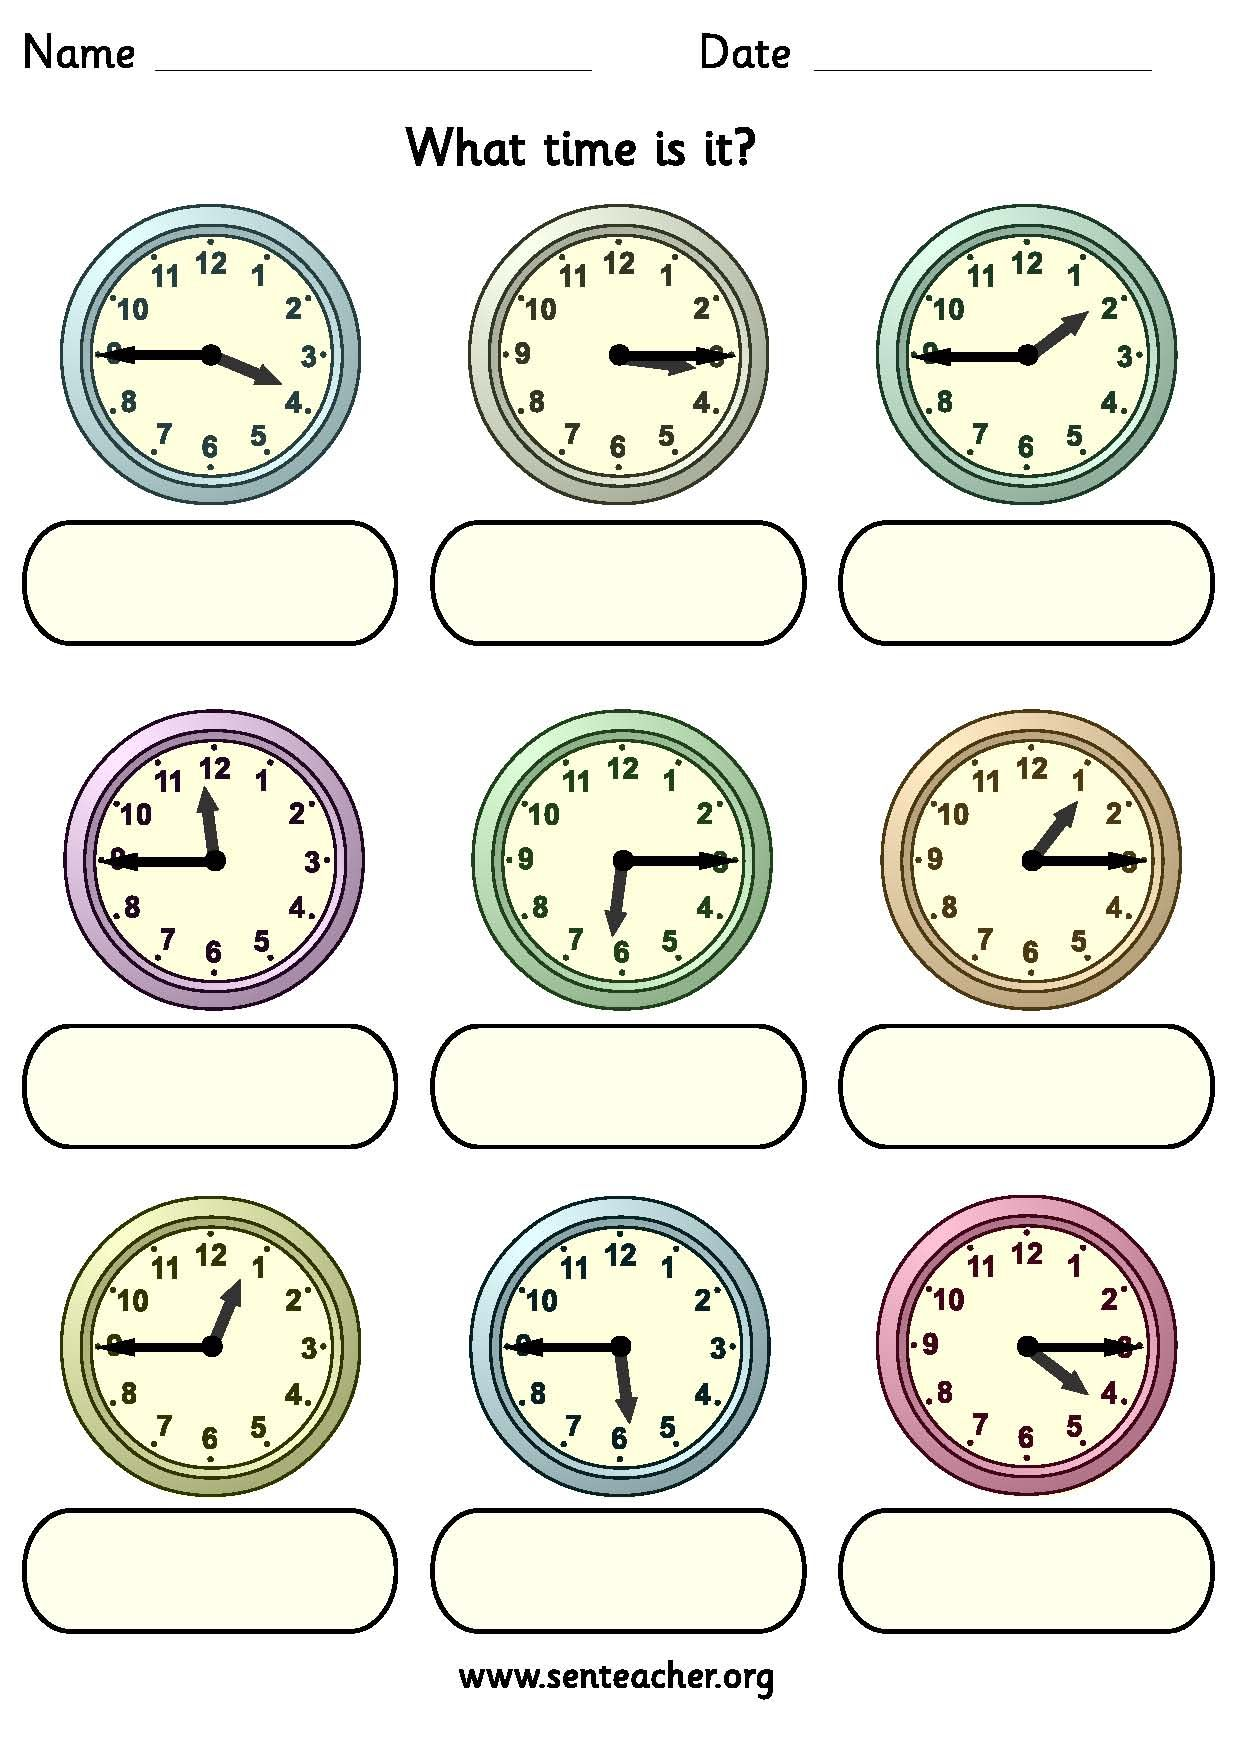 Worksheet Containing 9 Analogue Clocks Showing Quarter To And